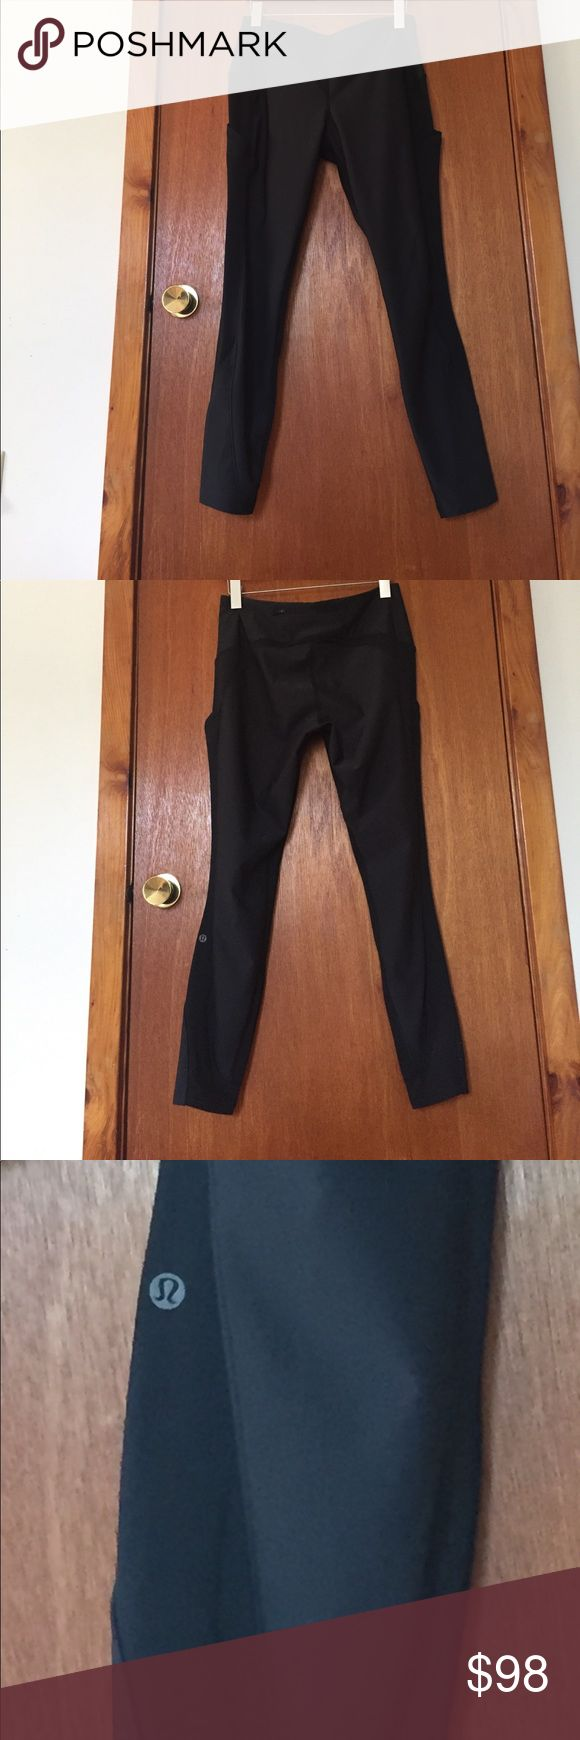 Lululemon sleet sprinter tight sz 10 Lululemon black sz 10 sleet sprinter tight. Awesome for winter runs, snowshoeing, or super toasty base layer under ski or snow mobile layers - I have them in blue and just don't need 2 pairs lululemon athletica Pants Leggings